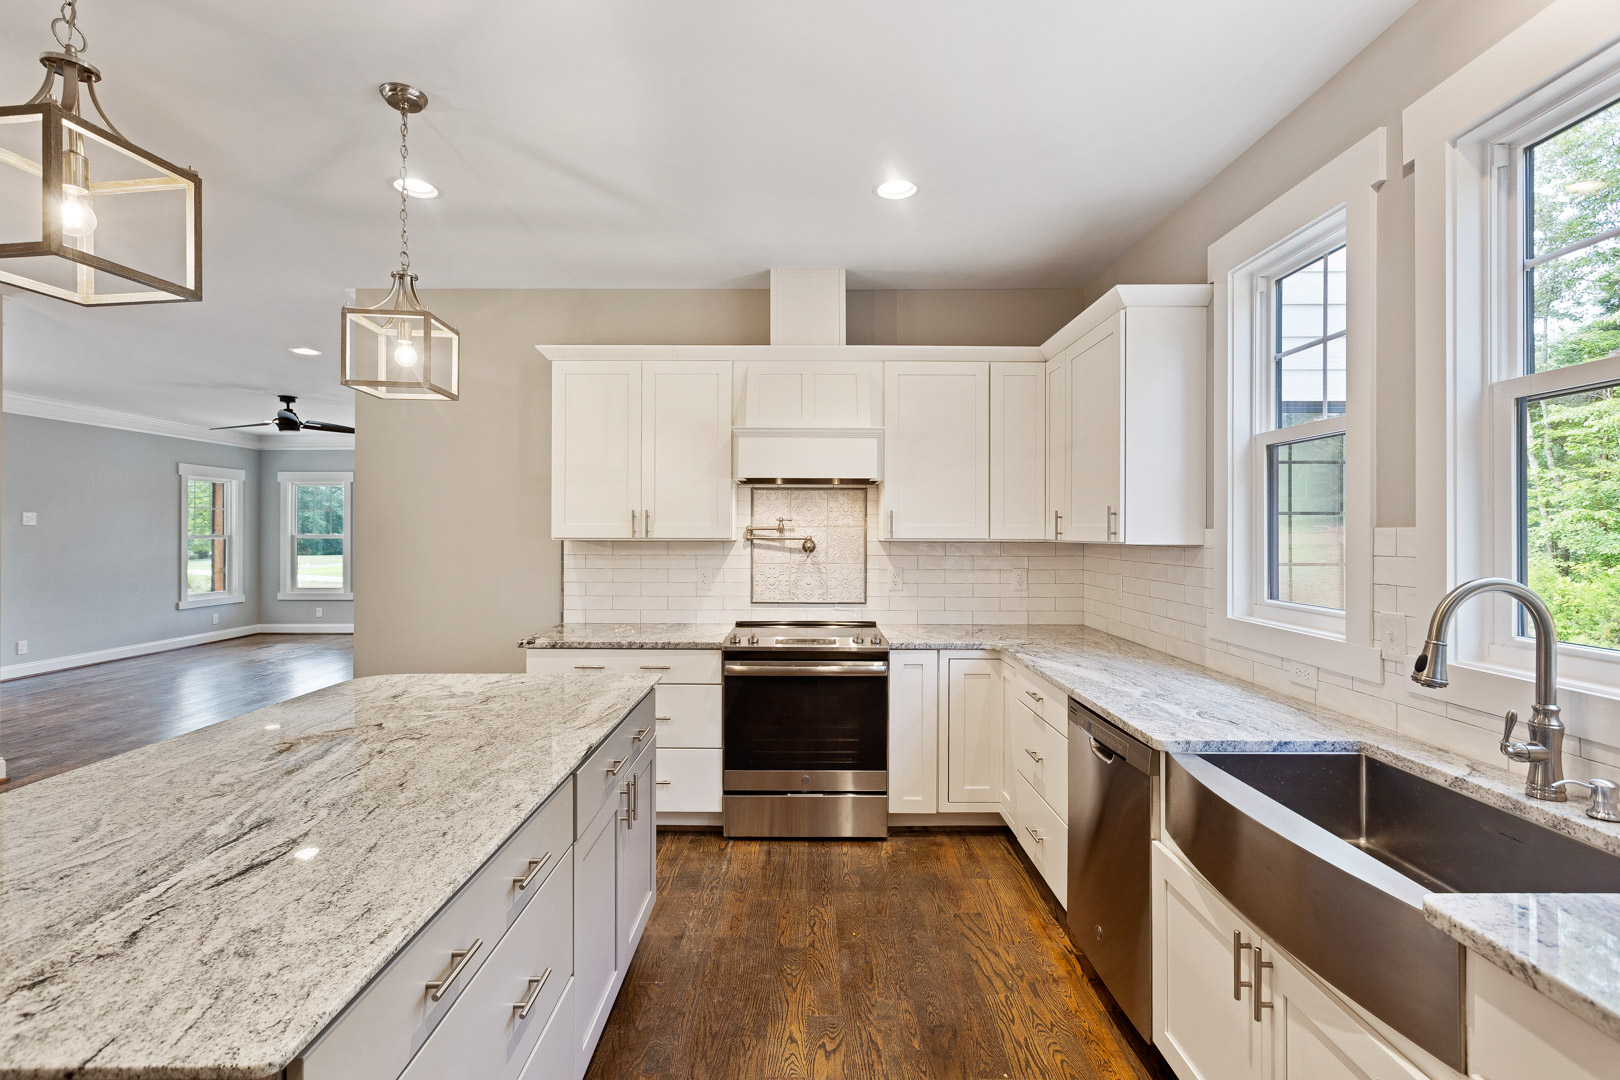 White kitchen of Balsom 1, with pot filler, deep sink, and granite countertops